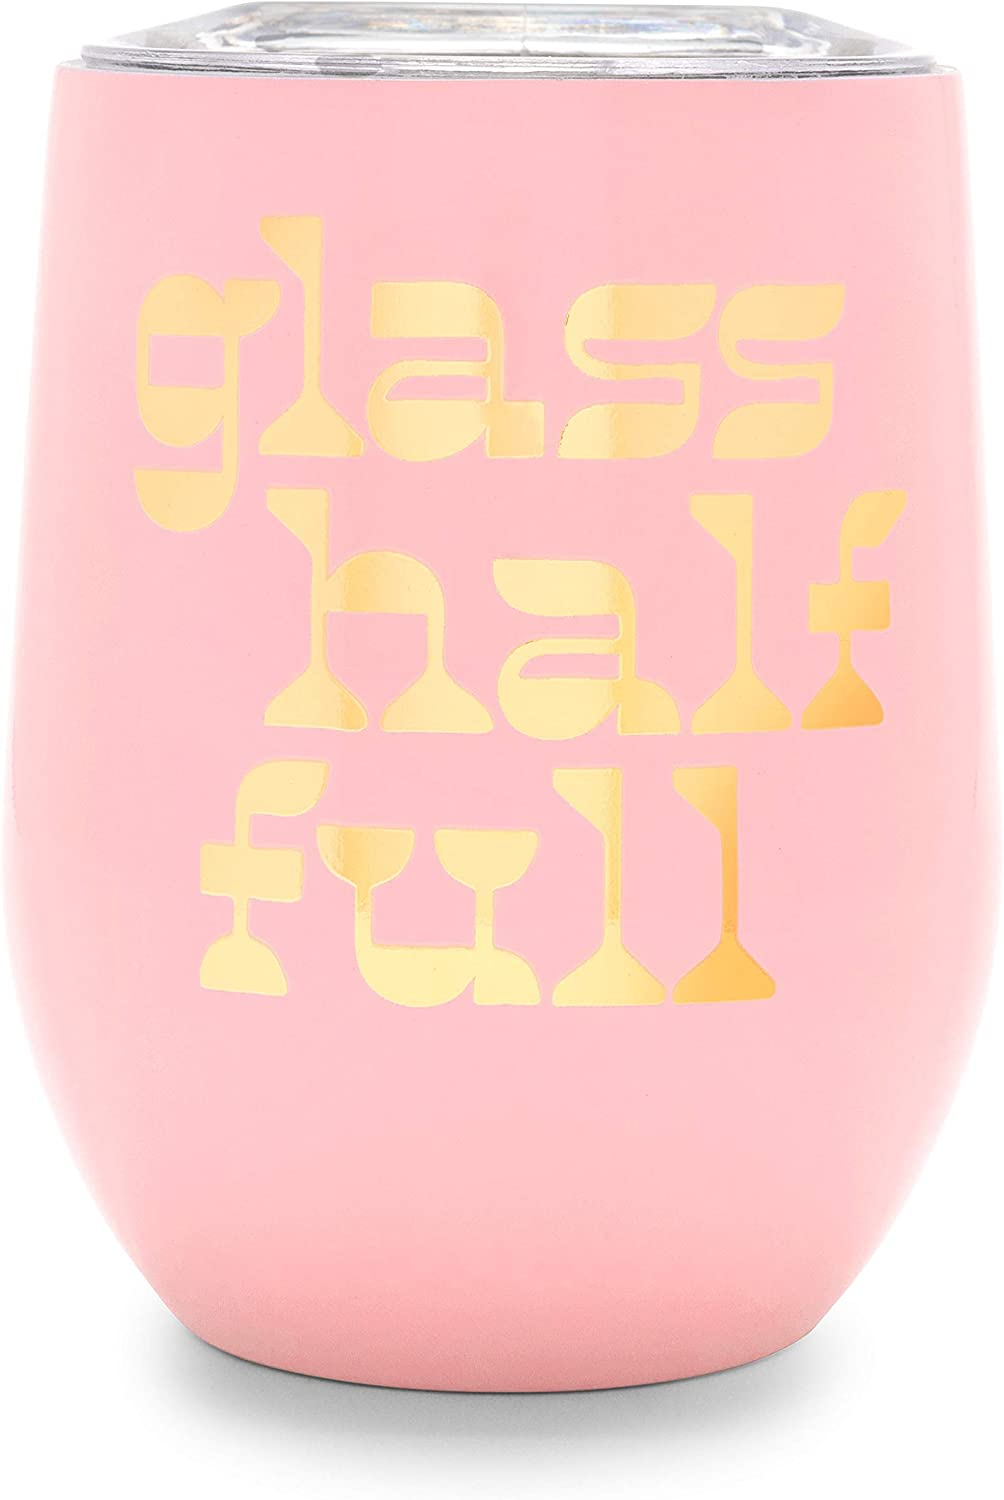 ban.do Pink Stainless Steel Stemless Wine Lid Tumbler Very popular! Glass Max 48% OFF with